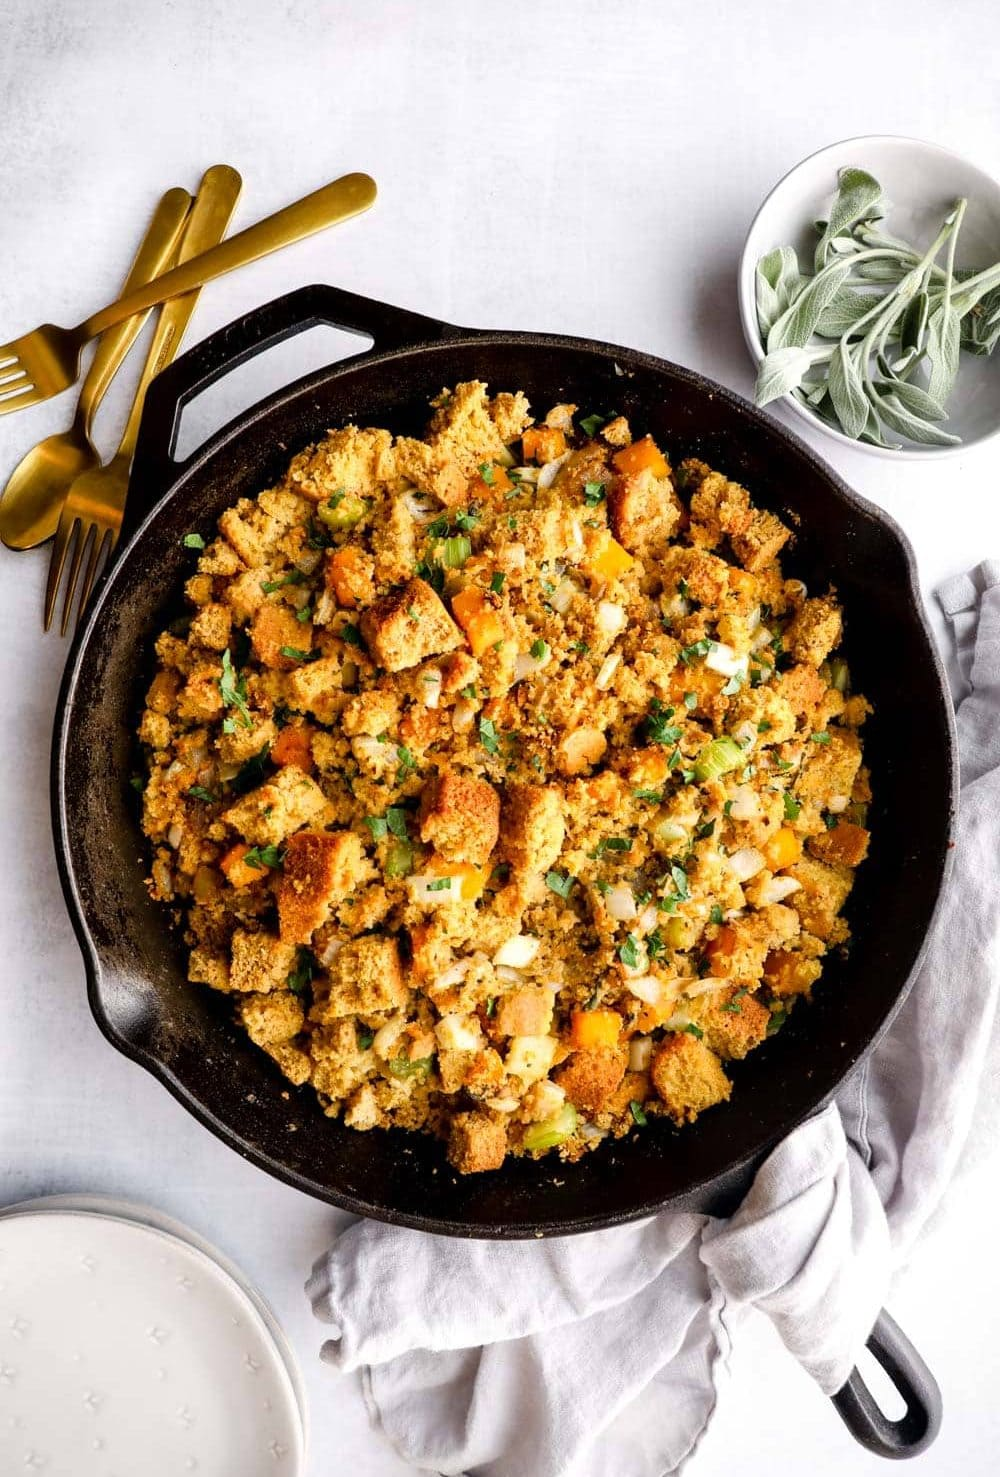 Gluten Free Cornbread Stuffing with butternut squash and thyme.